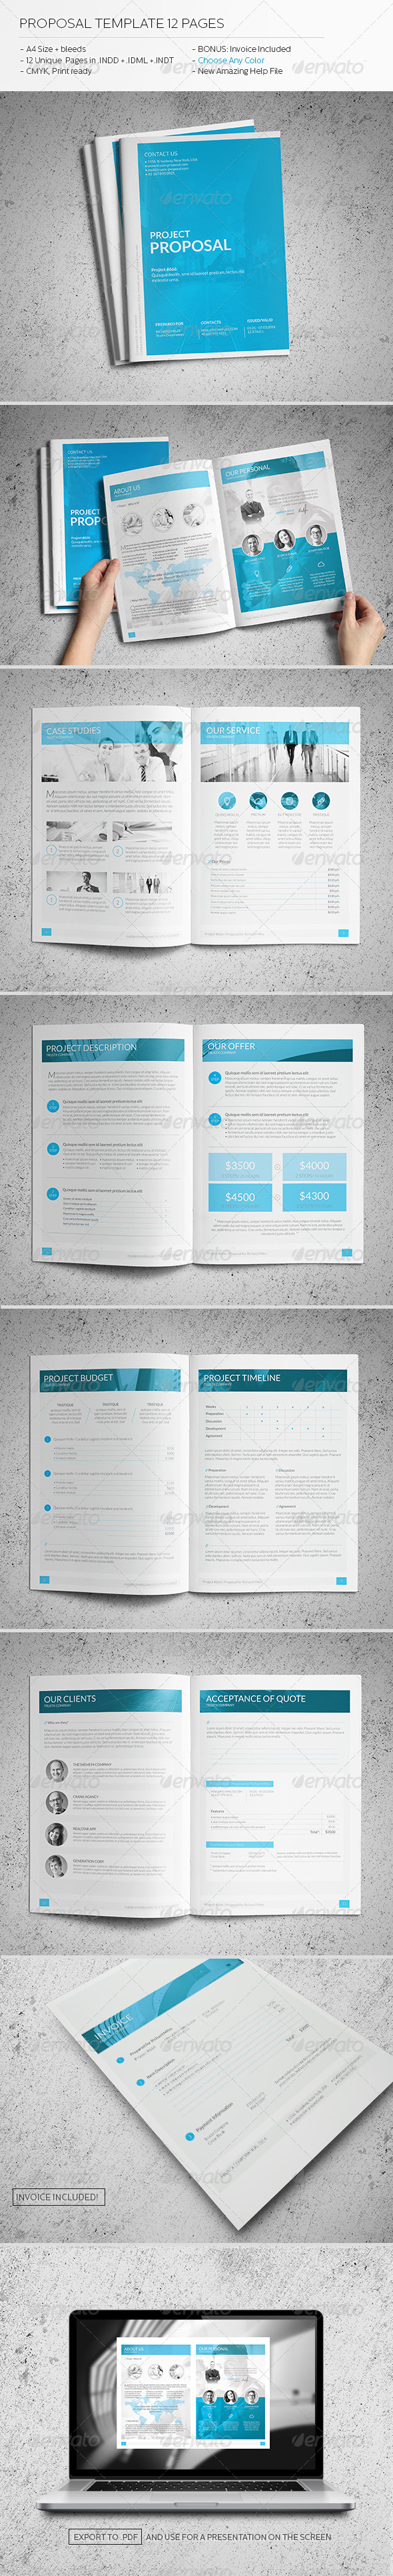 GraphicRiver Proposal Template 12 Pages 6135610